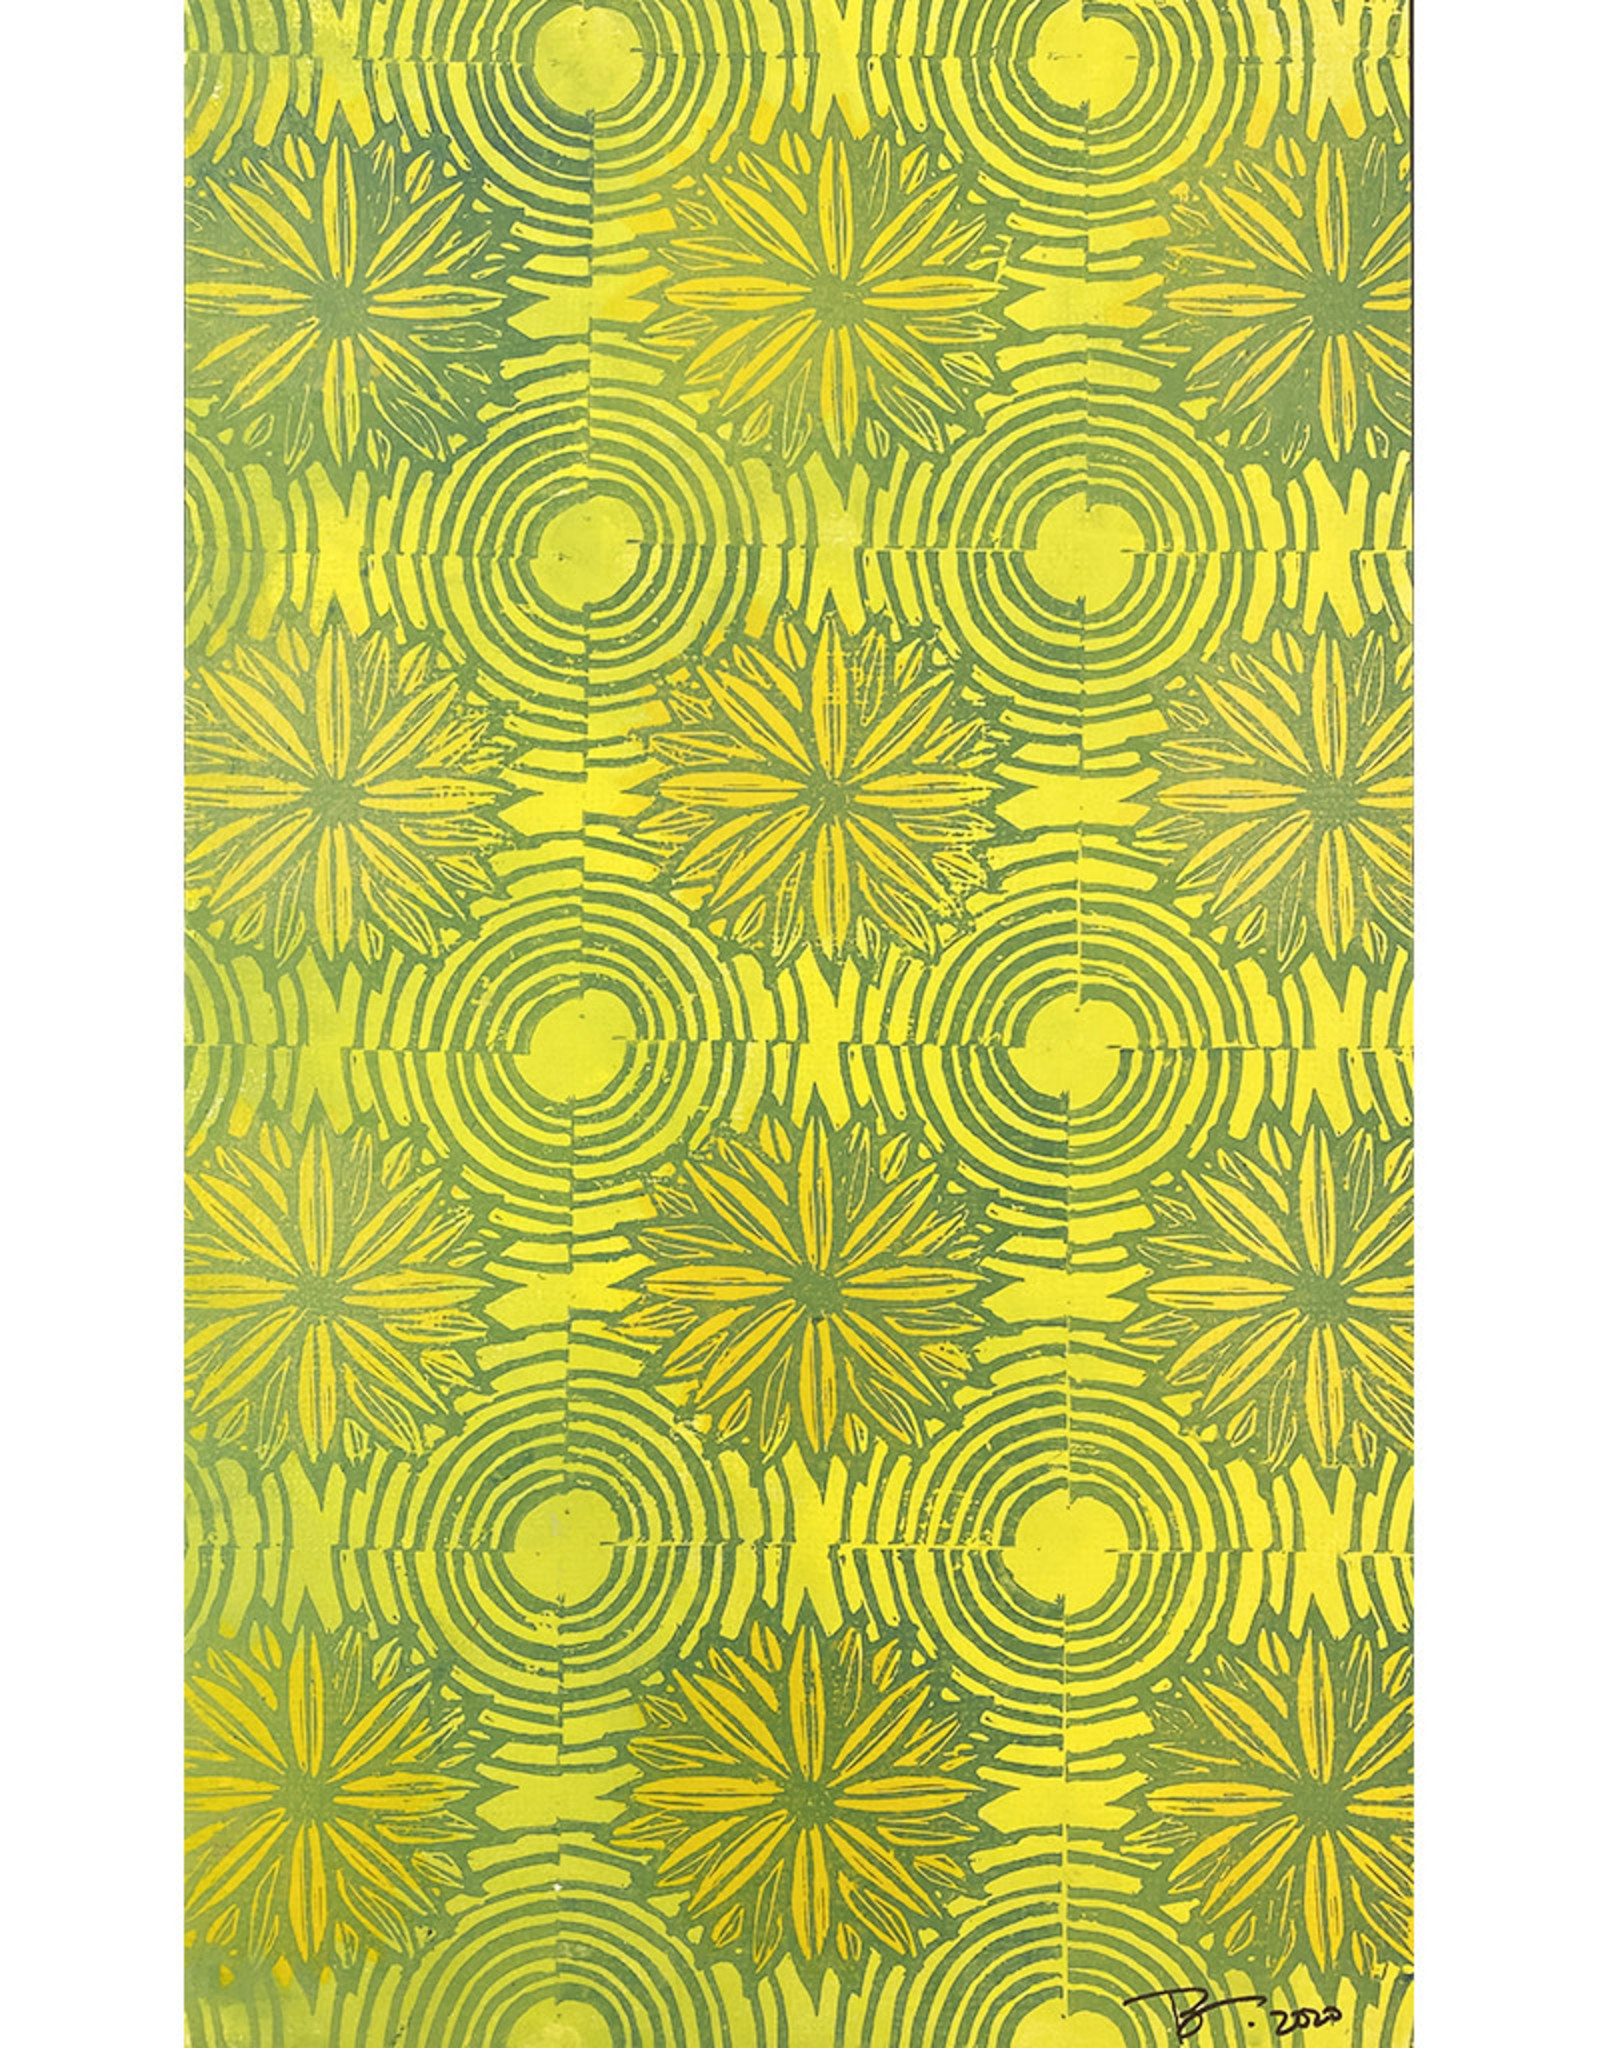 Paul Punzo Flowers + Circles 1 Wallpaper Print by Paul Punzo